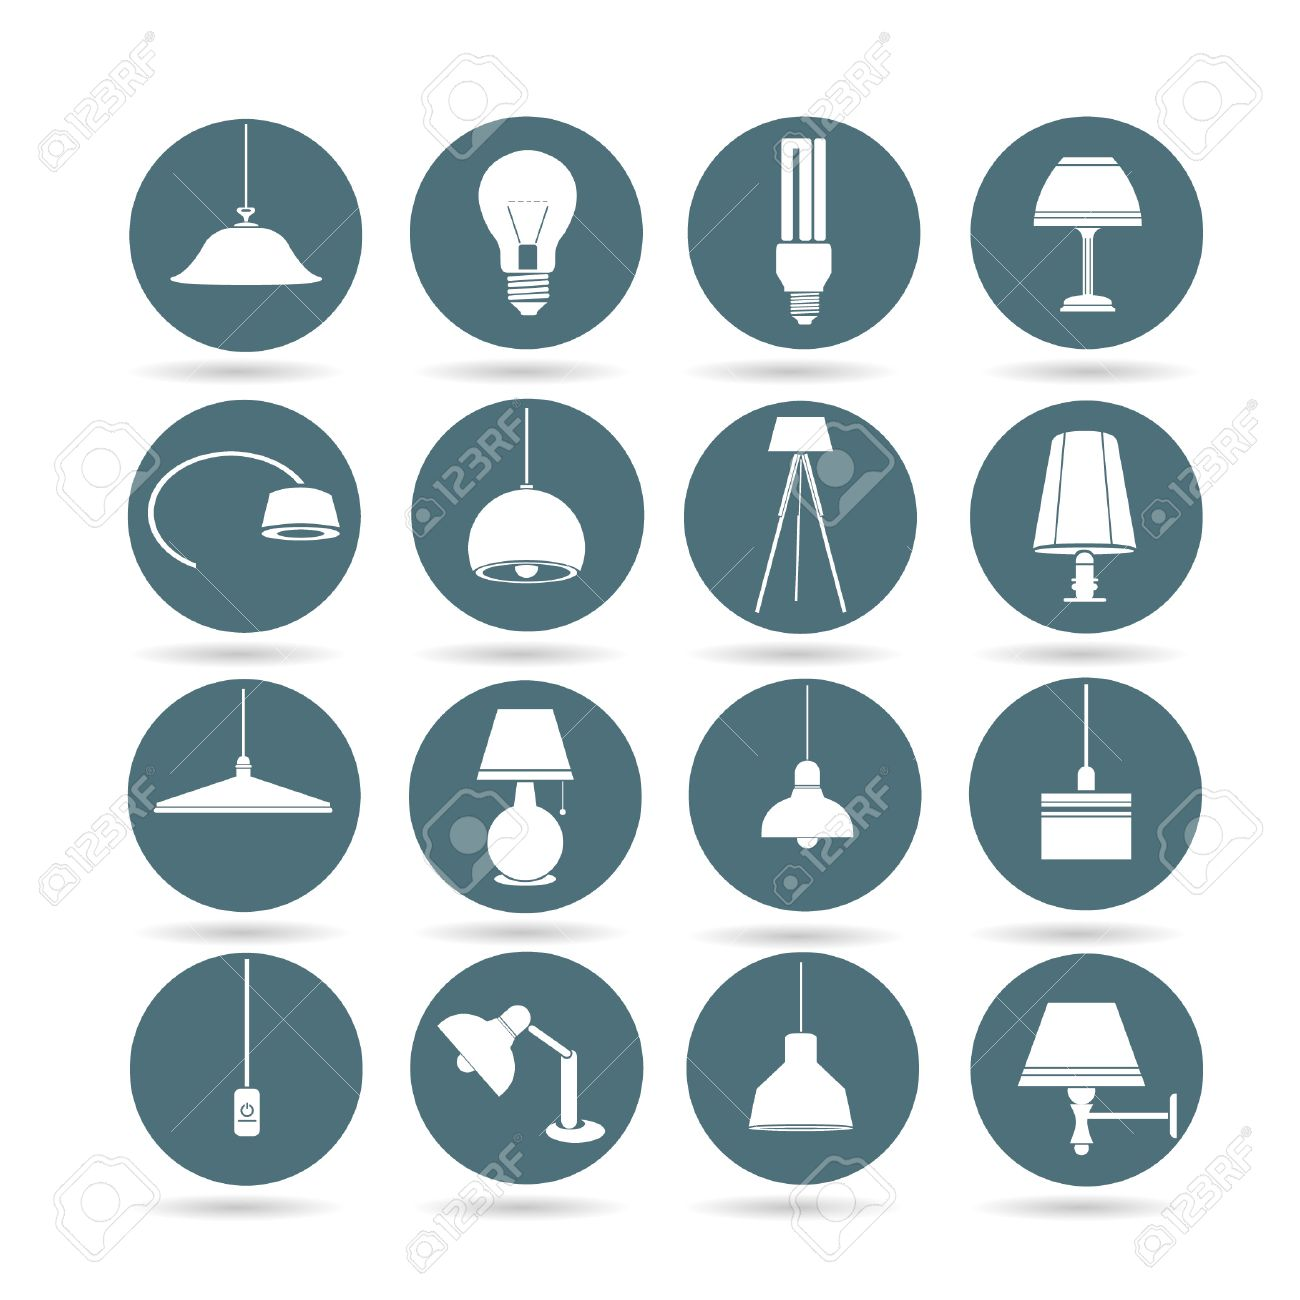 Lamp Icons Interior Design Buttons App Set Stock Vector